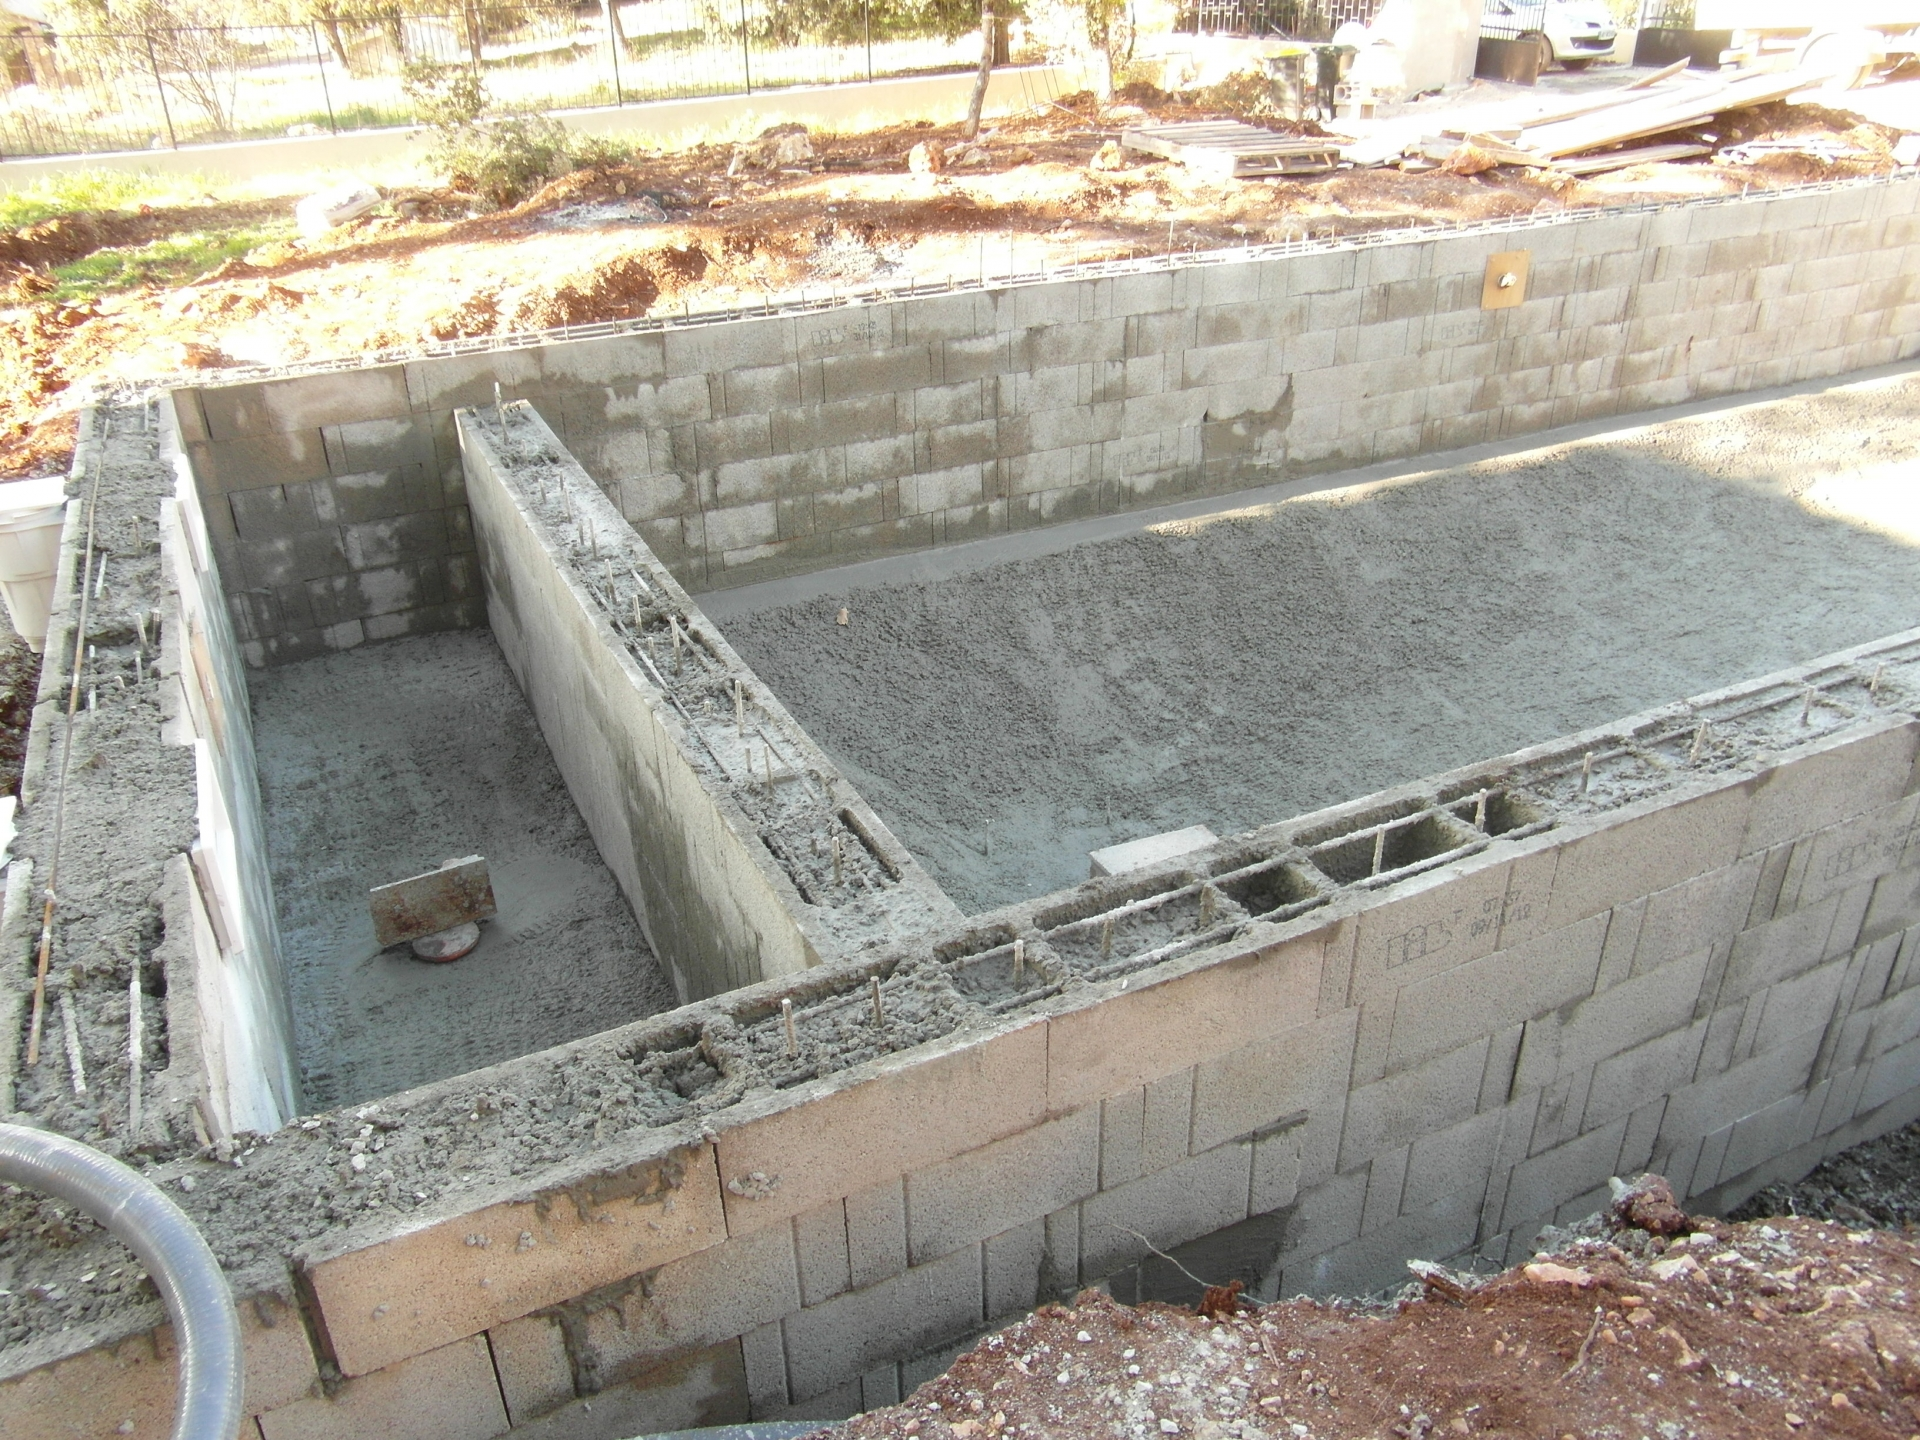 Plan piscine beton excellent with plan piscine beton for Ceinture beton piscine